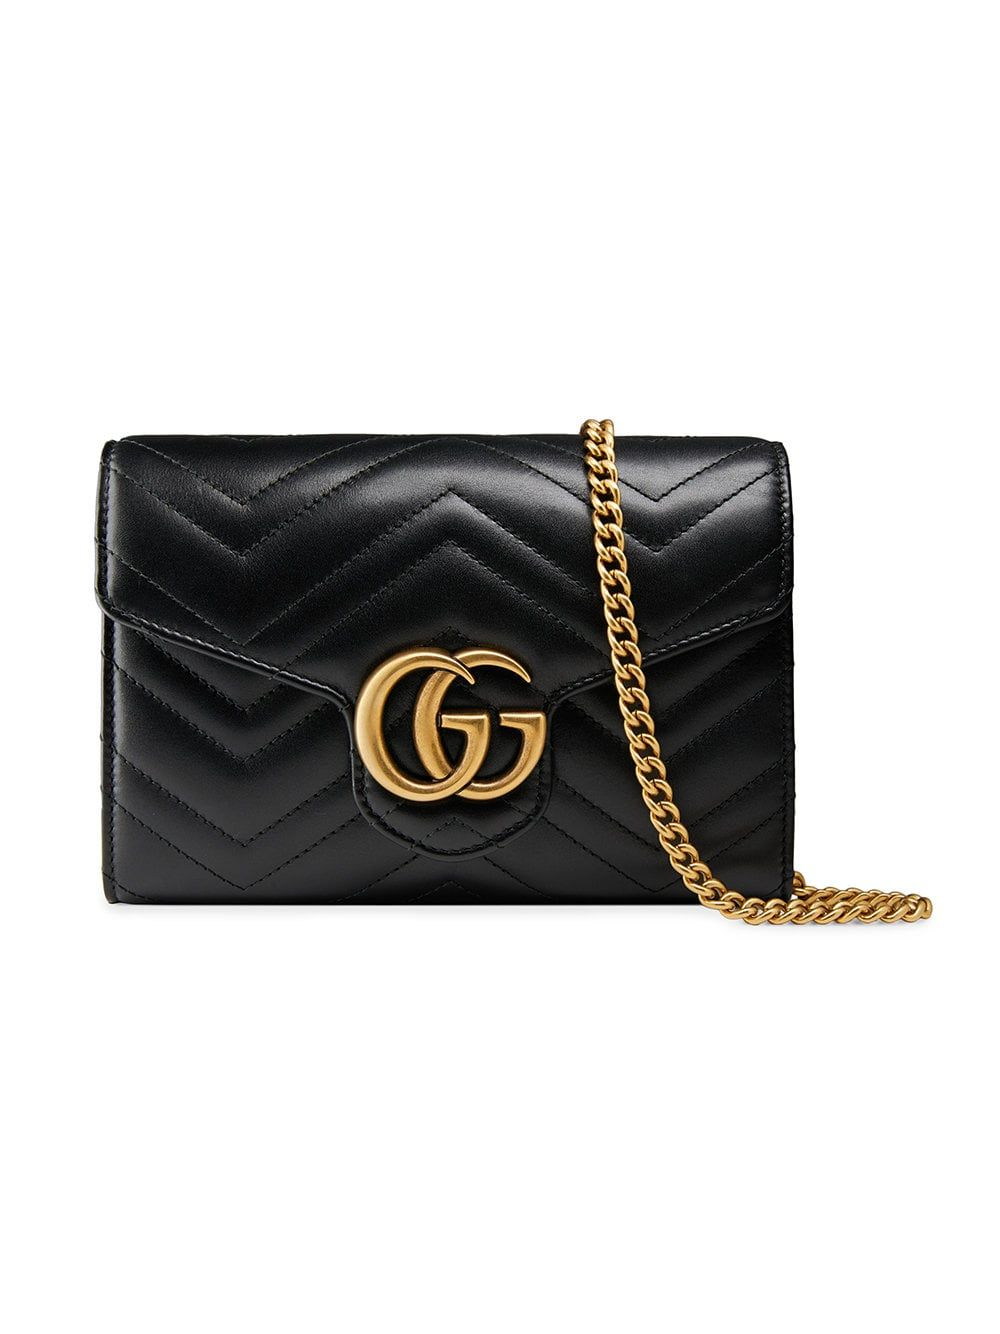 detailed look 7d542 2725e Gucci GGマーモント チェーンウォレット | レザーケース | Gucci ...